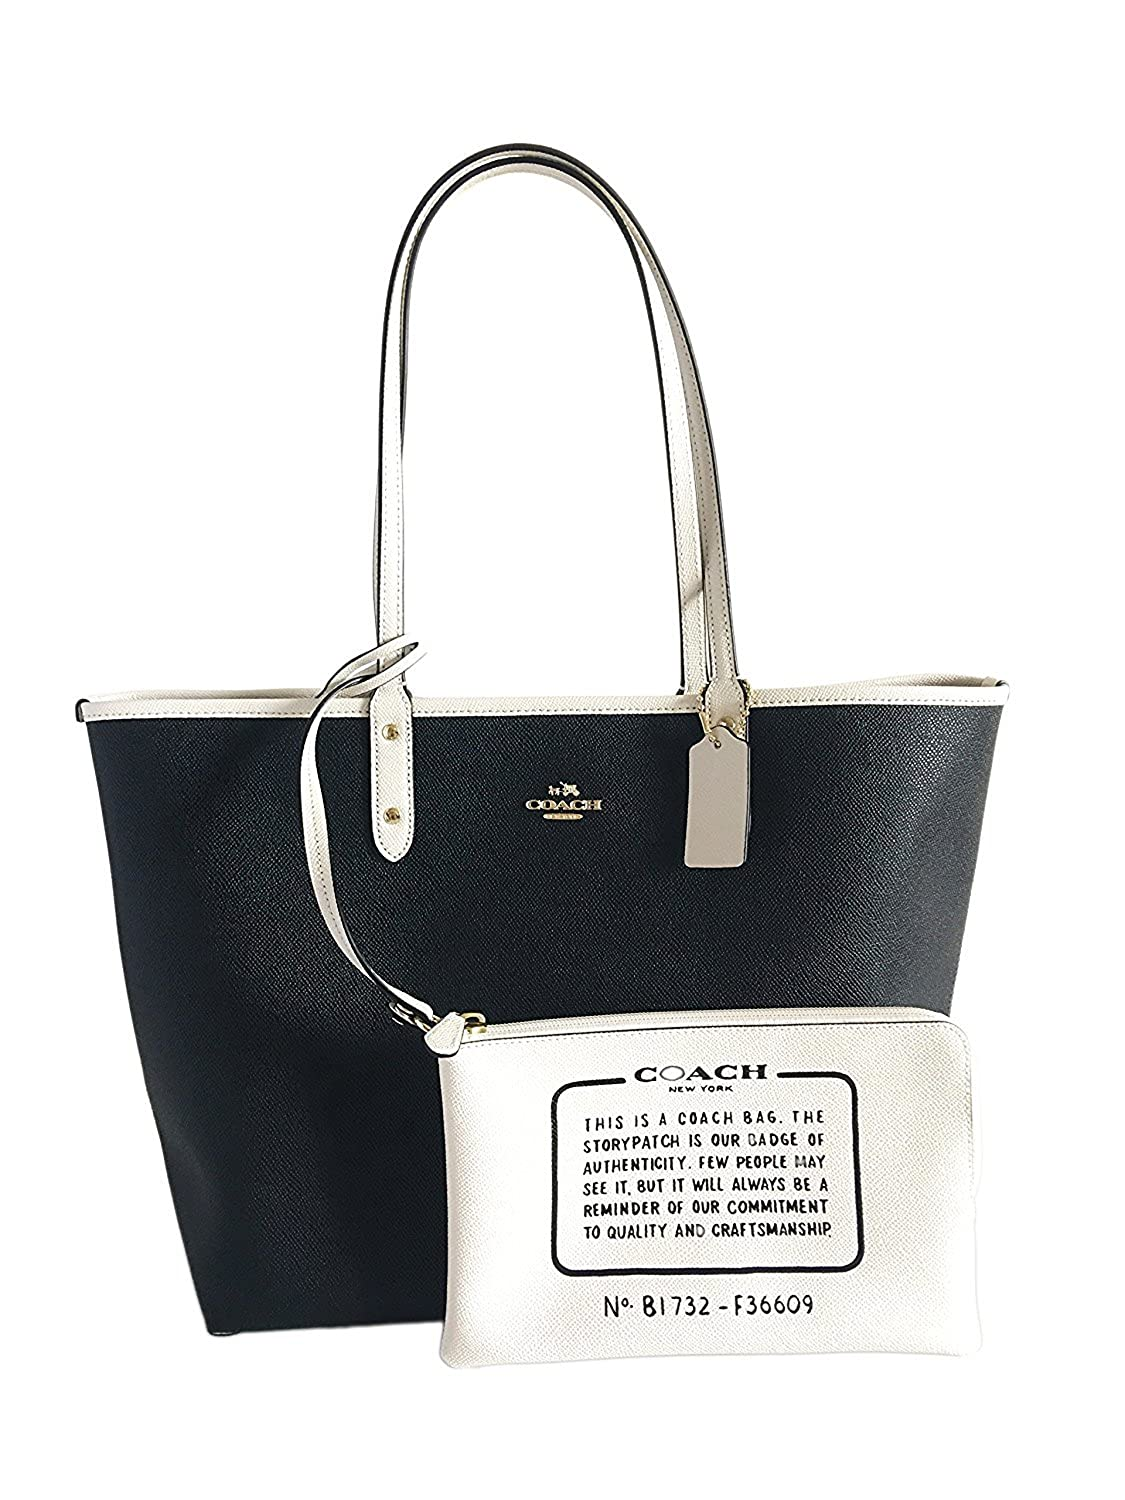 191ba3d6d5c COACH Reversible City Tote in Coated Canvas (Black/White/Gold)